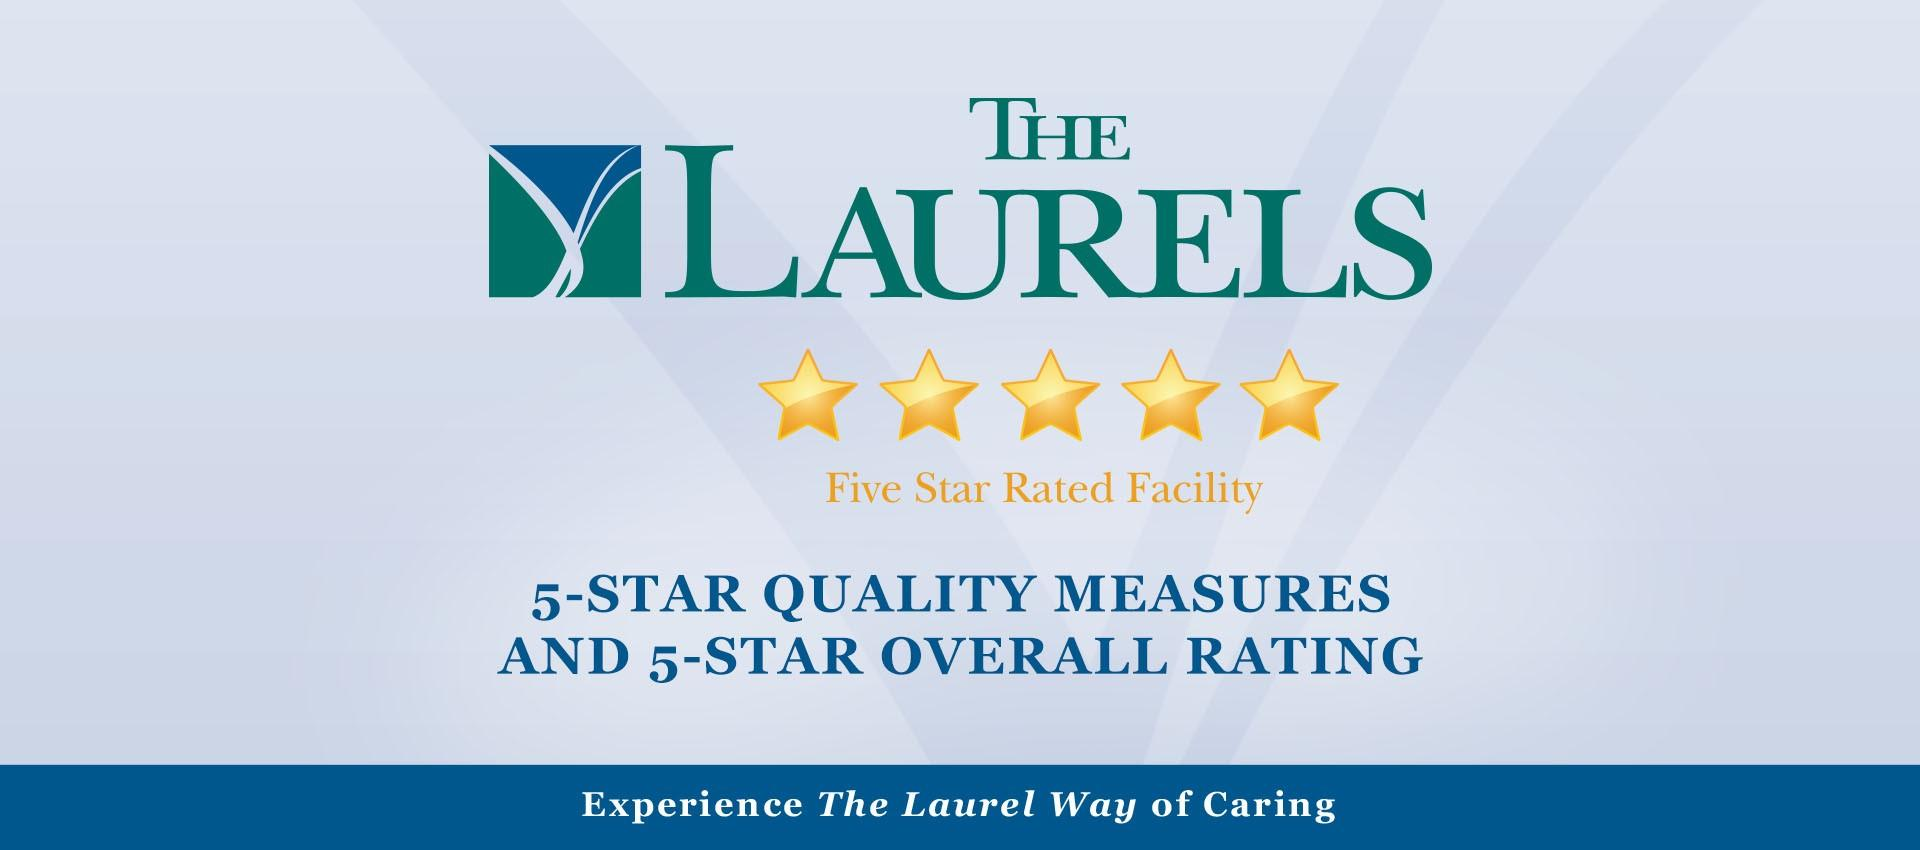 5-Star Quality Measures & 5-Star Overall